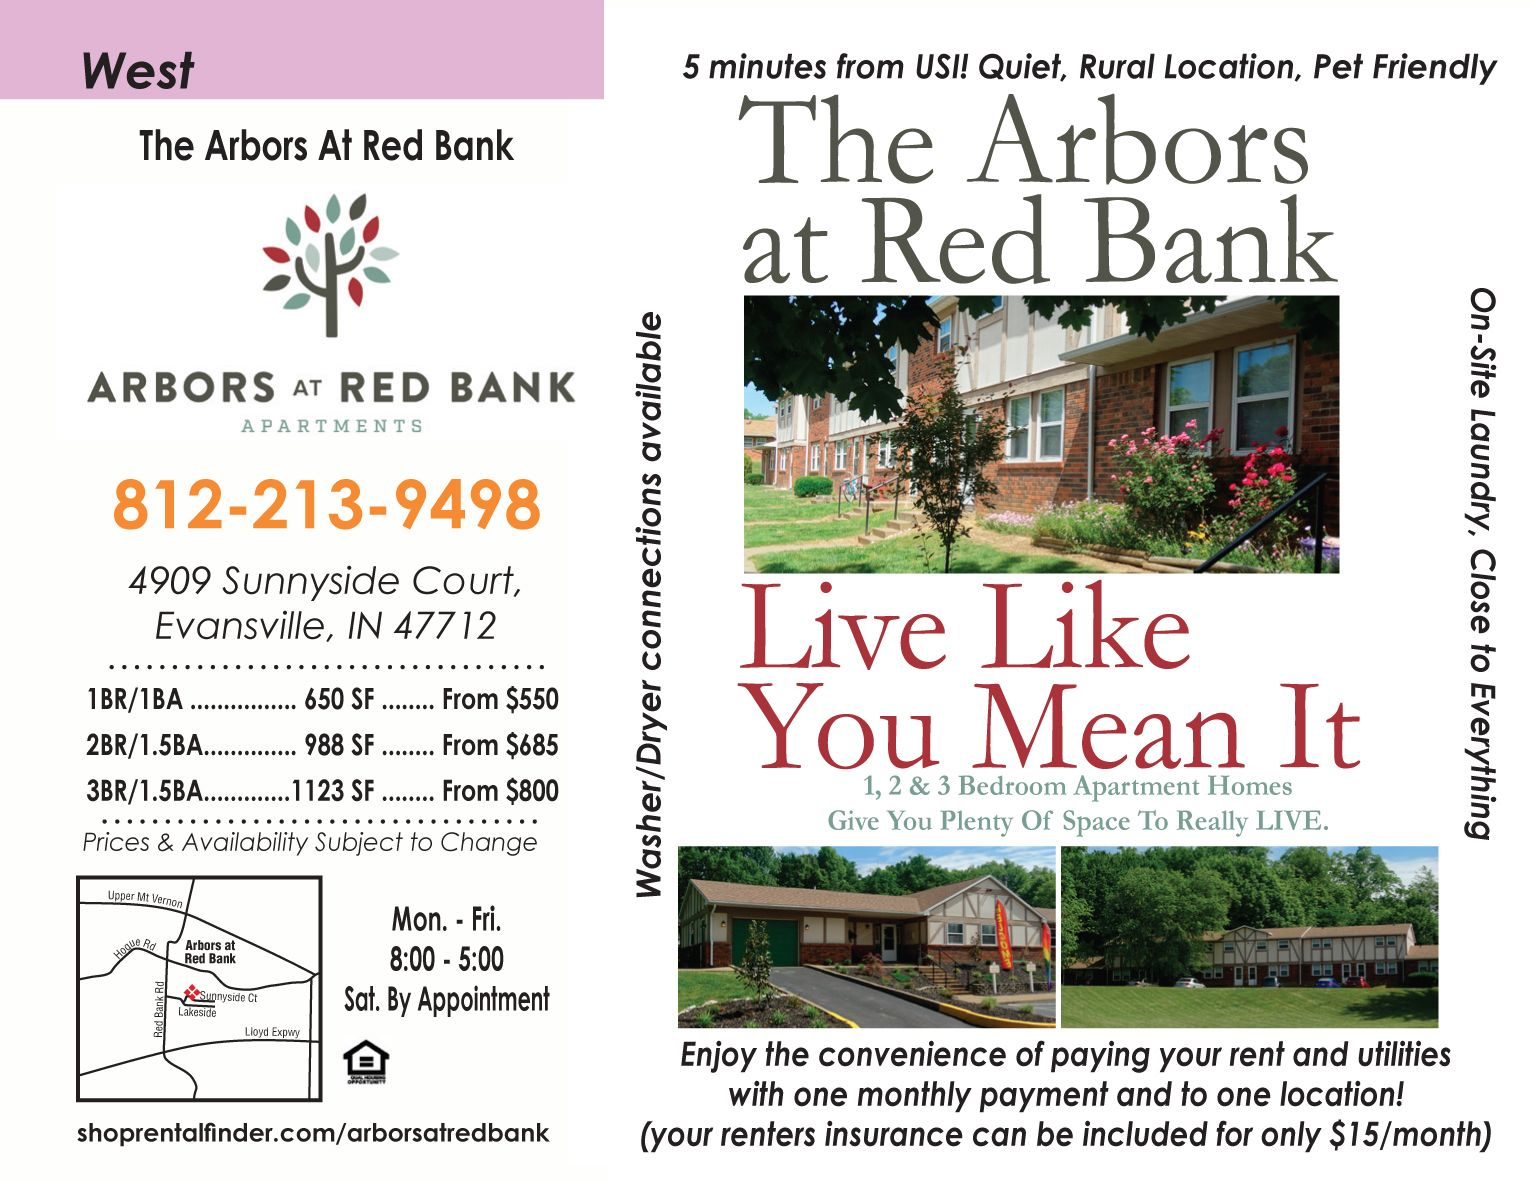 Looking For An Apartment By Usi Check Out The Arbors At Red Bank Give Them A Call 812 213 9498